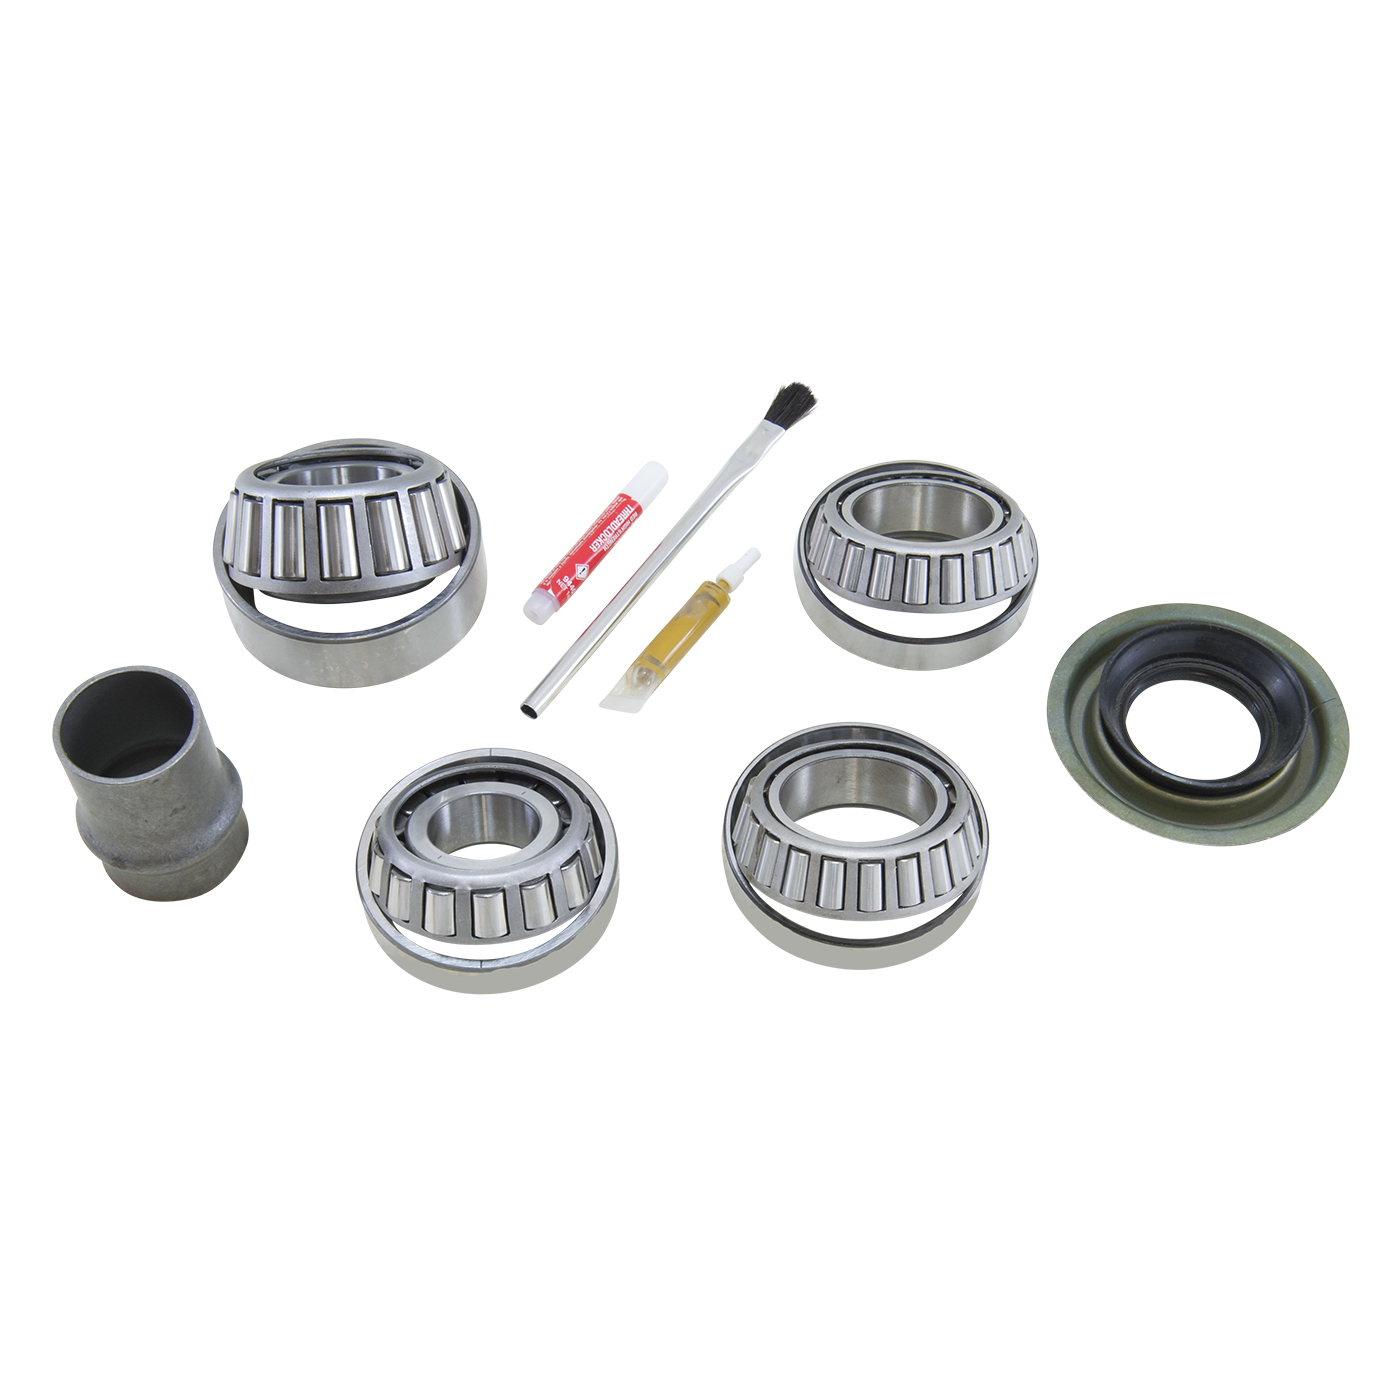 BK ITROOPER - Yukon Bearing install kit for Isuzu Trooper (with drum brakes) differential